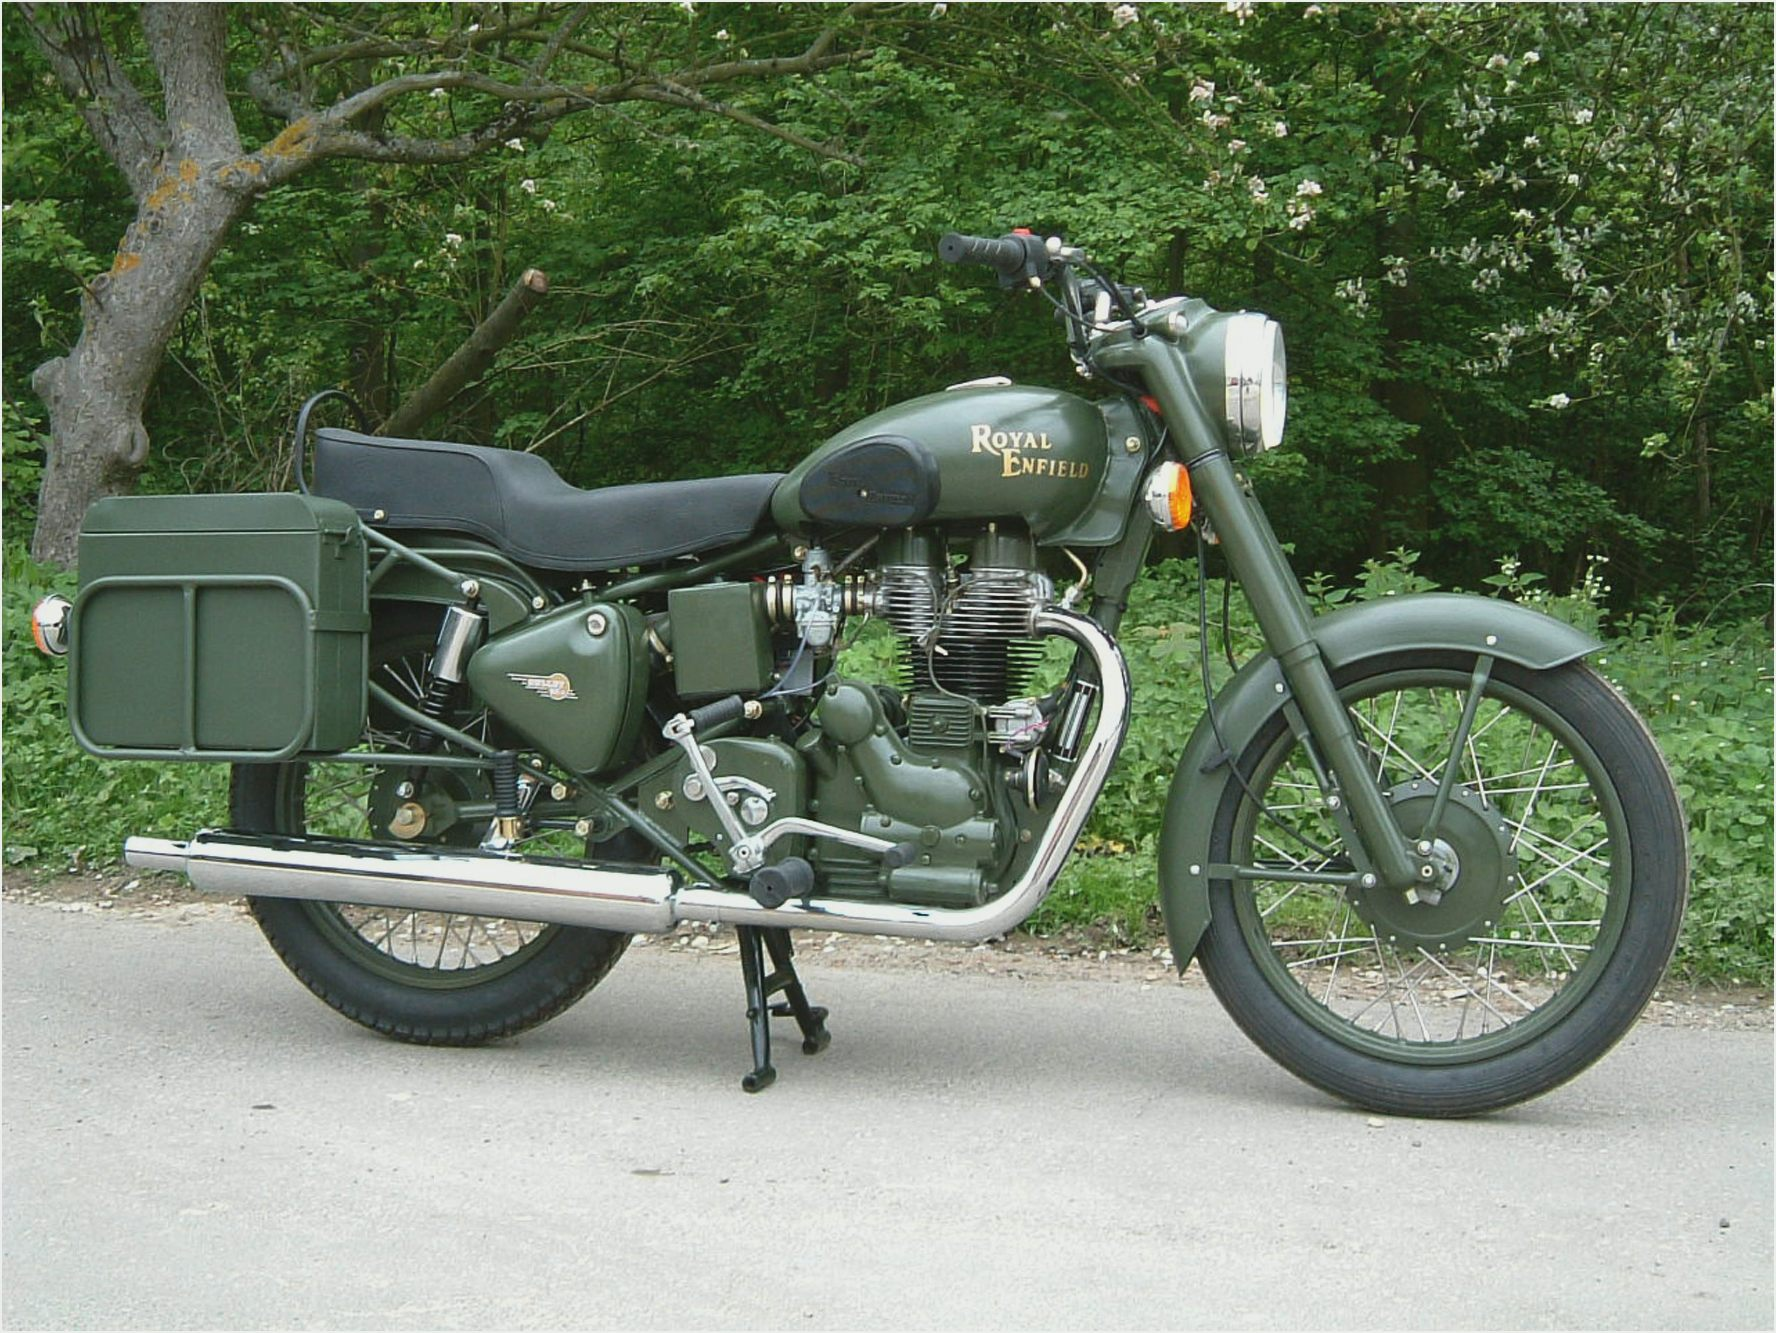 Royal Enfield Bullet 500 Army 1991 images #123317